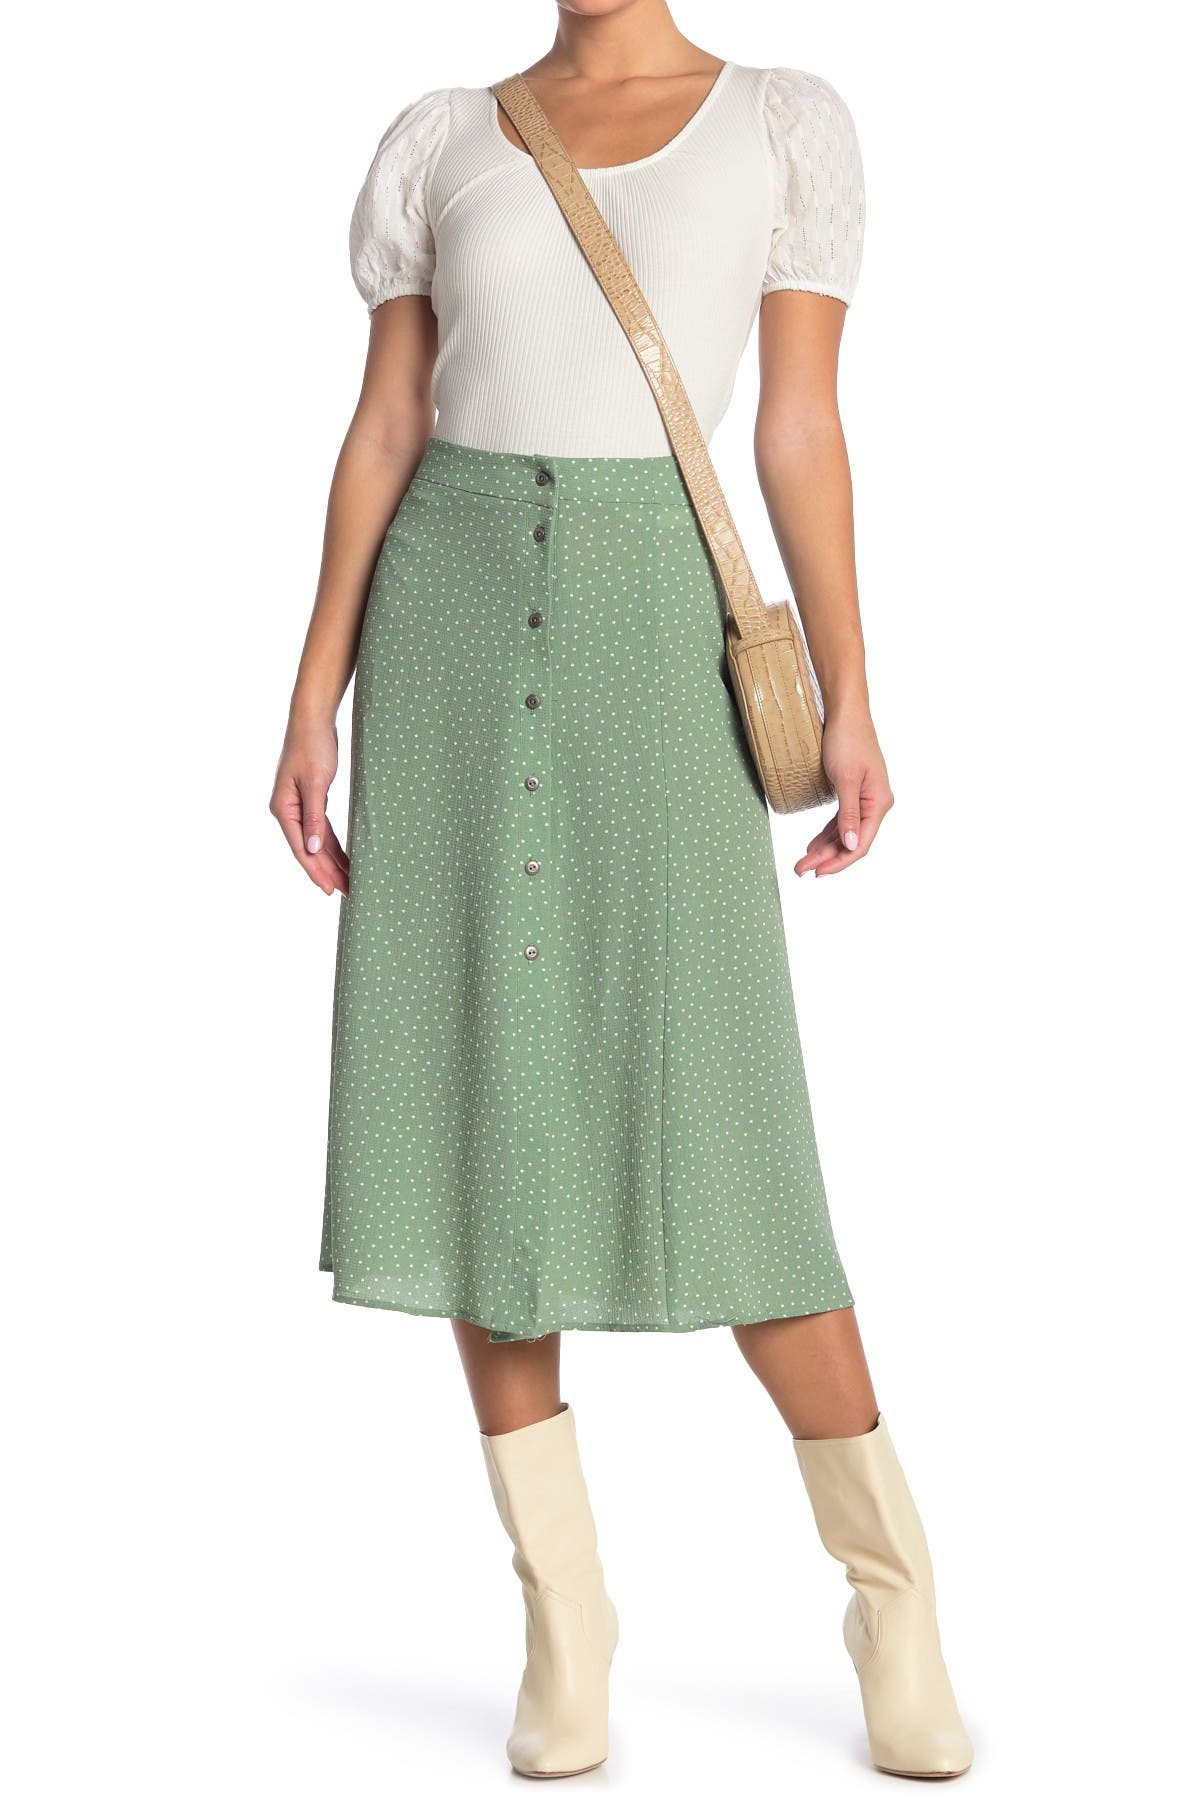 Image of GOOD LUCK GEM Printed Side Button Midi Skirt